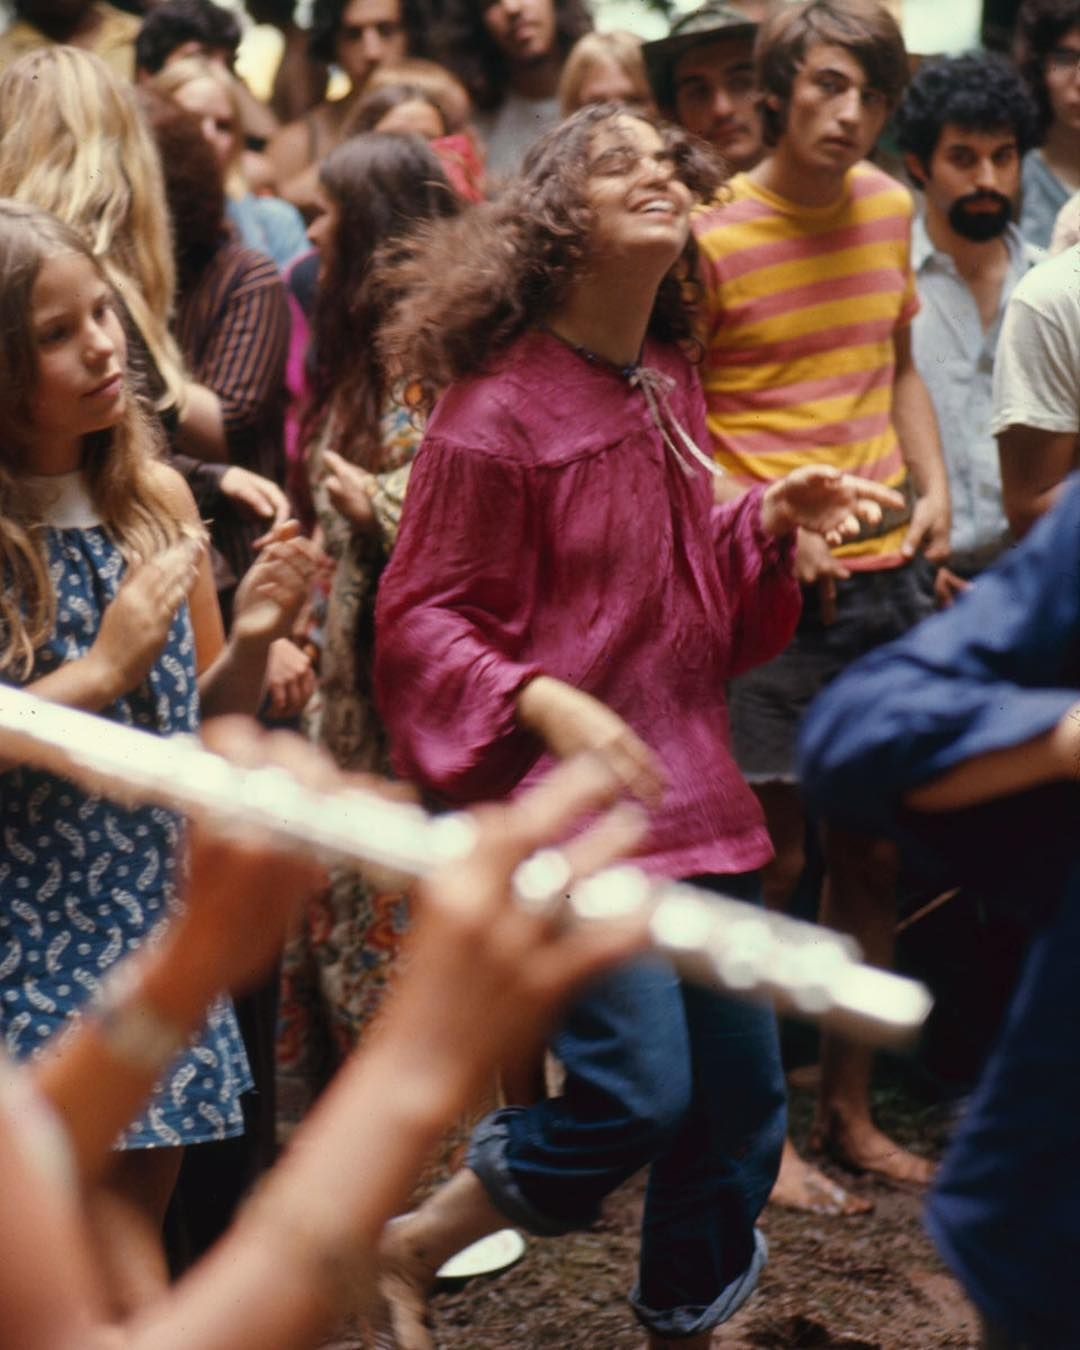 A carefree and fashionable scene from the Woodstock Music